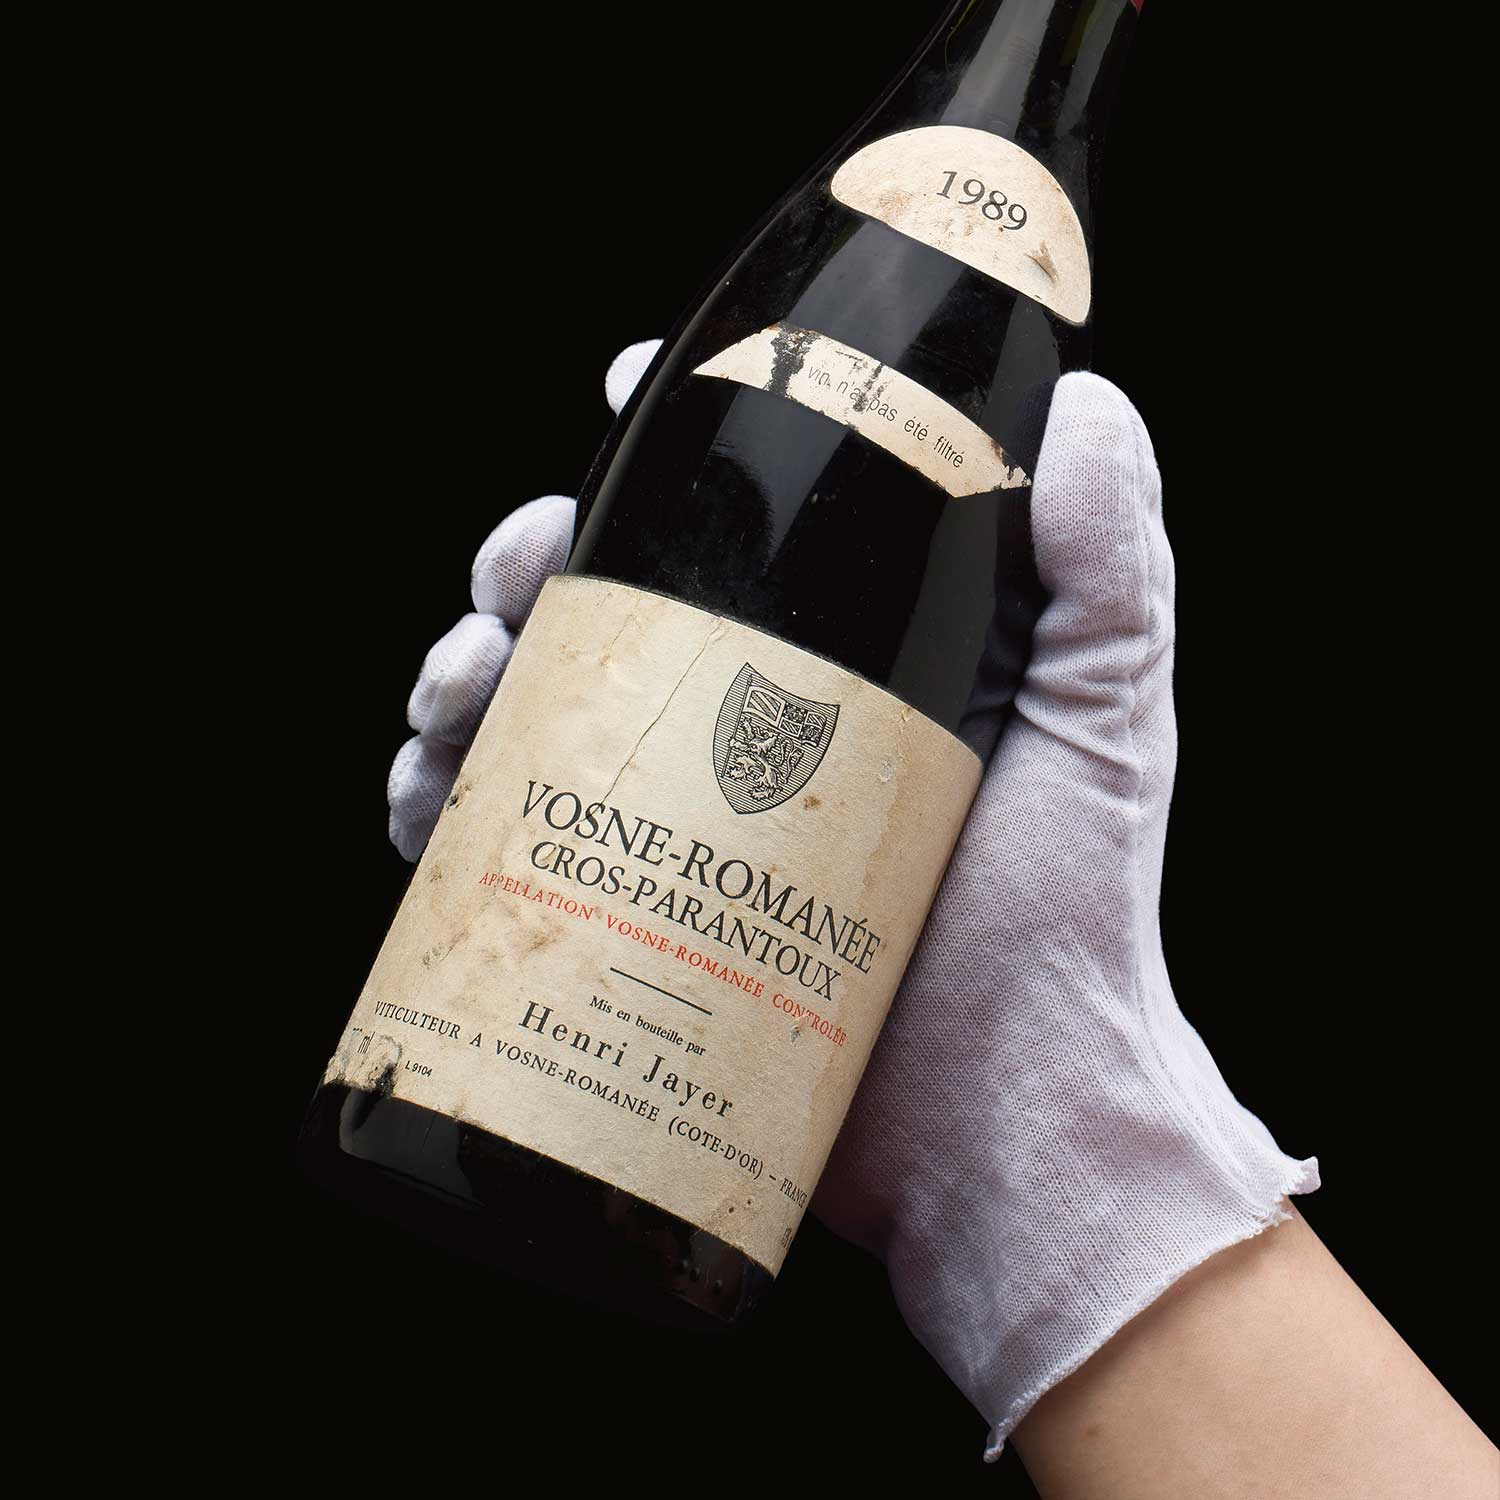 A 1989 bottle of Vosne-Romanée, Cros Parantoux that was sold as a set of a dozen with Christie's in 2012, for USD 90,750 (Image: Christies.com)